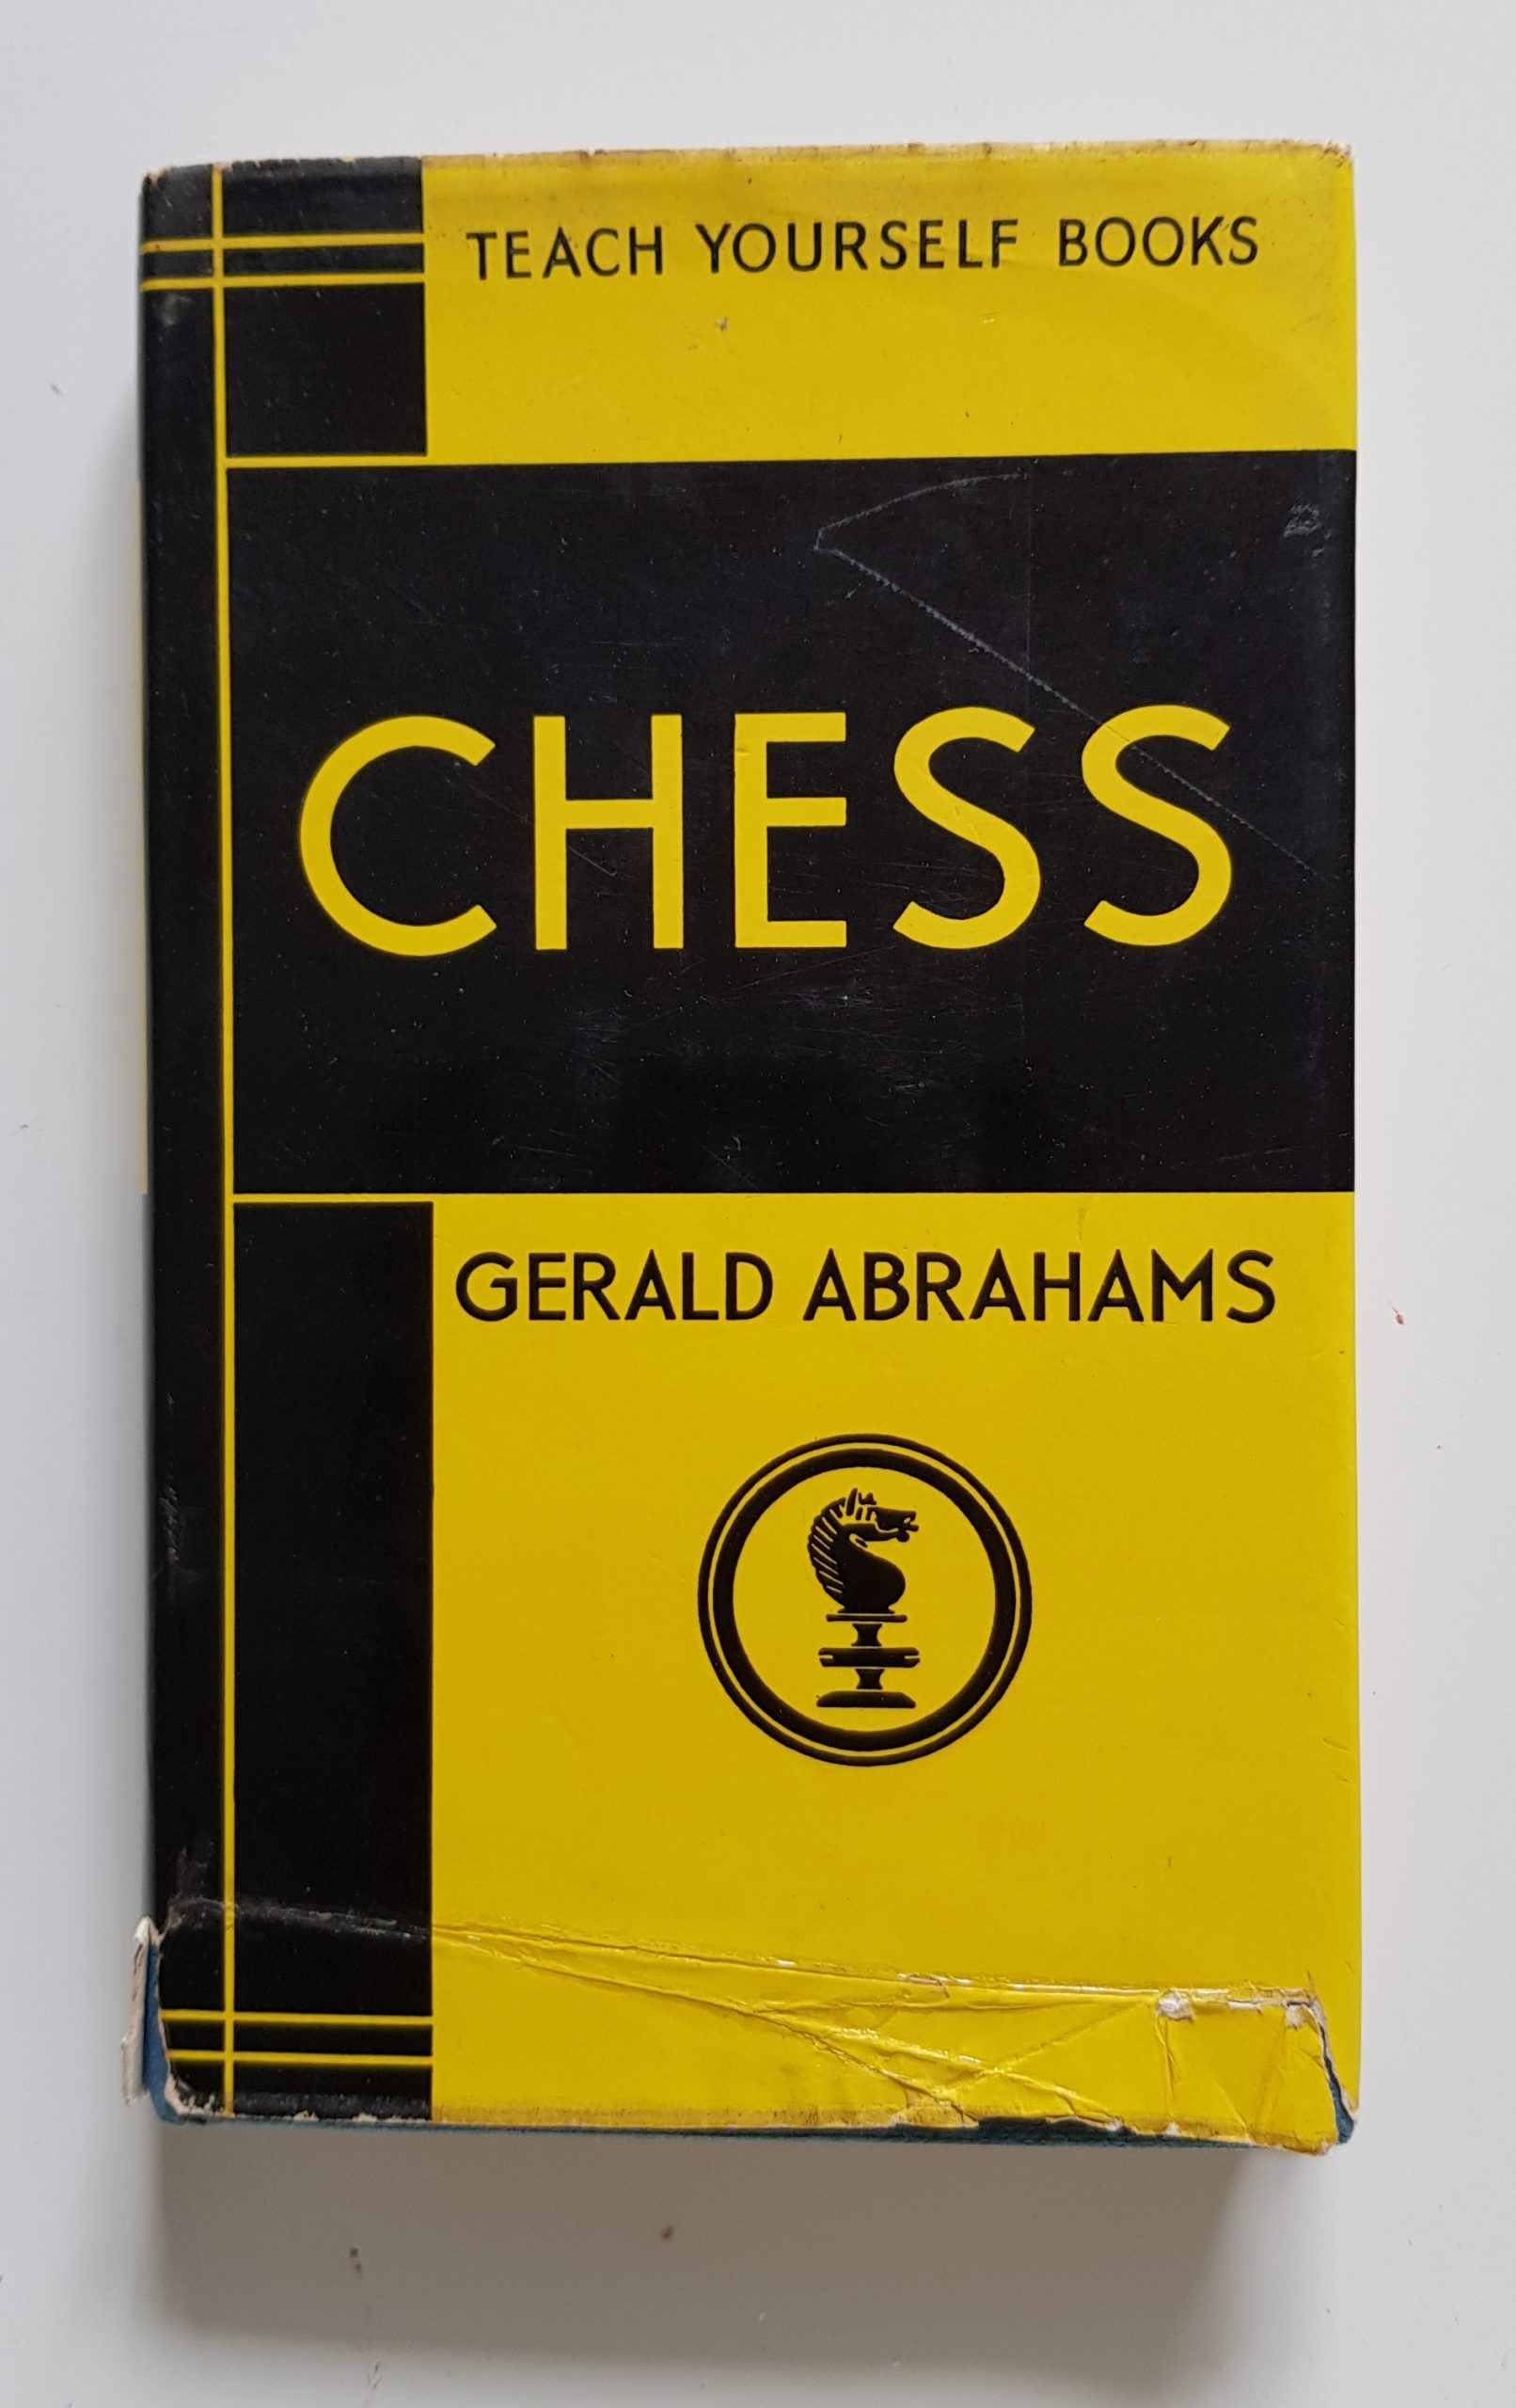 Teach Yourself Chess, Gerald Abrahams, The English Universities Press Ltd, 1965,